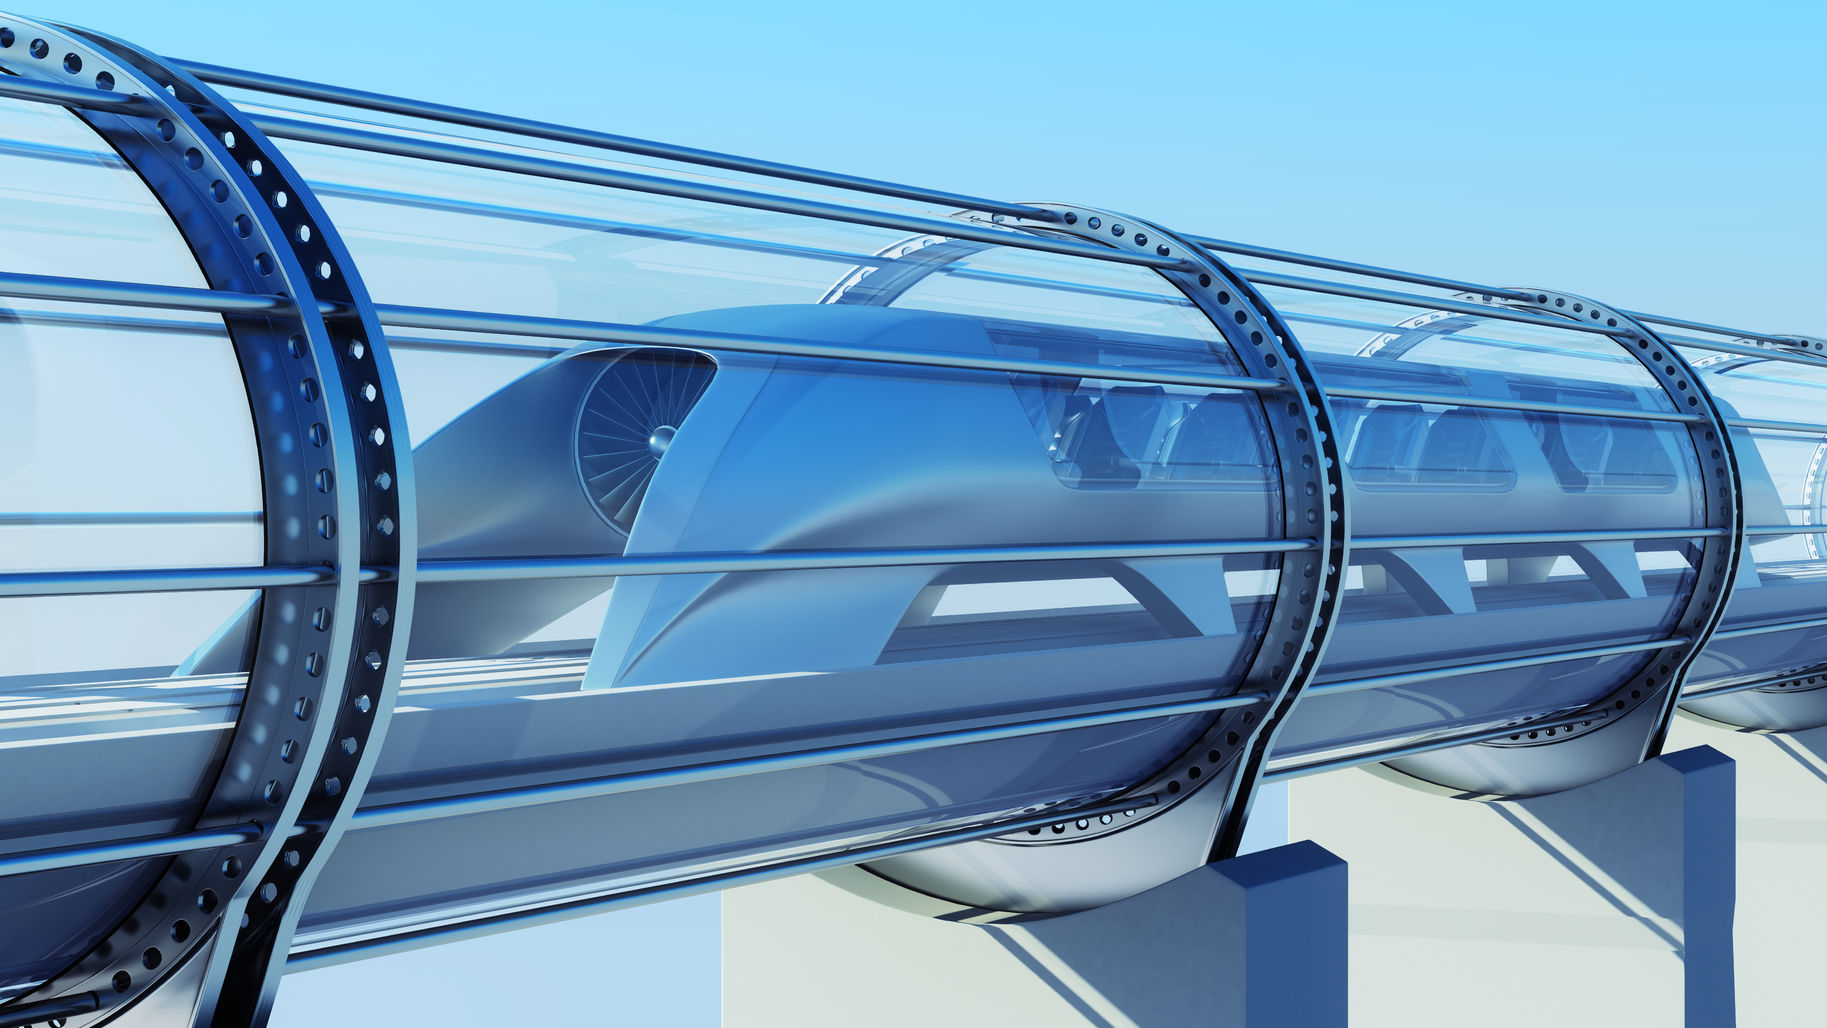 What's Happening With Hyperloop? - Bold Business